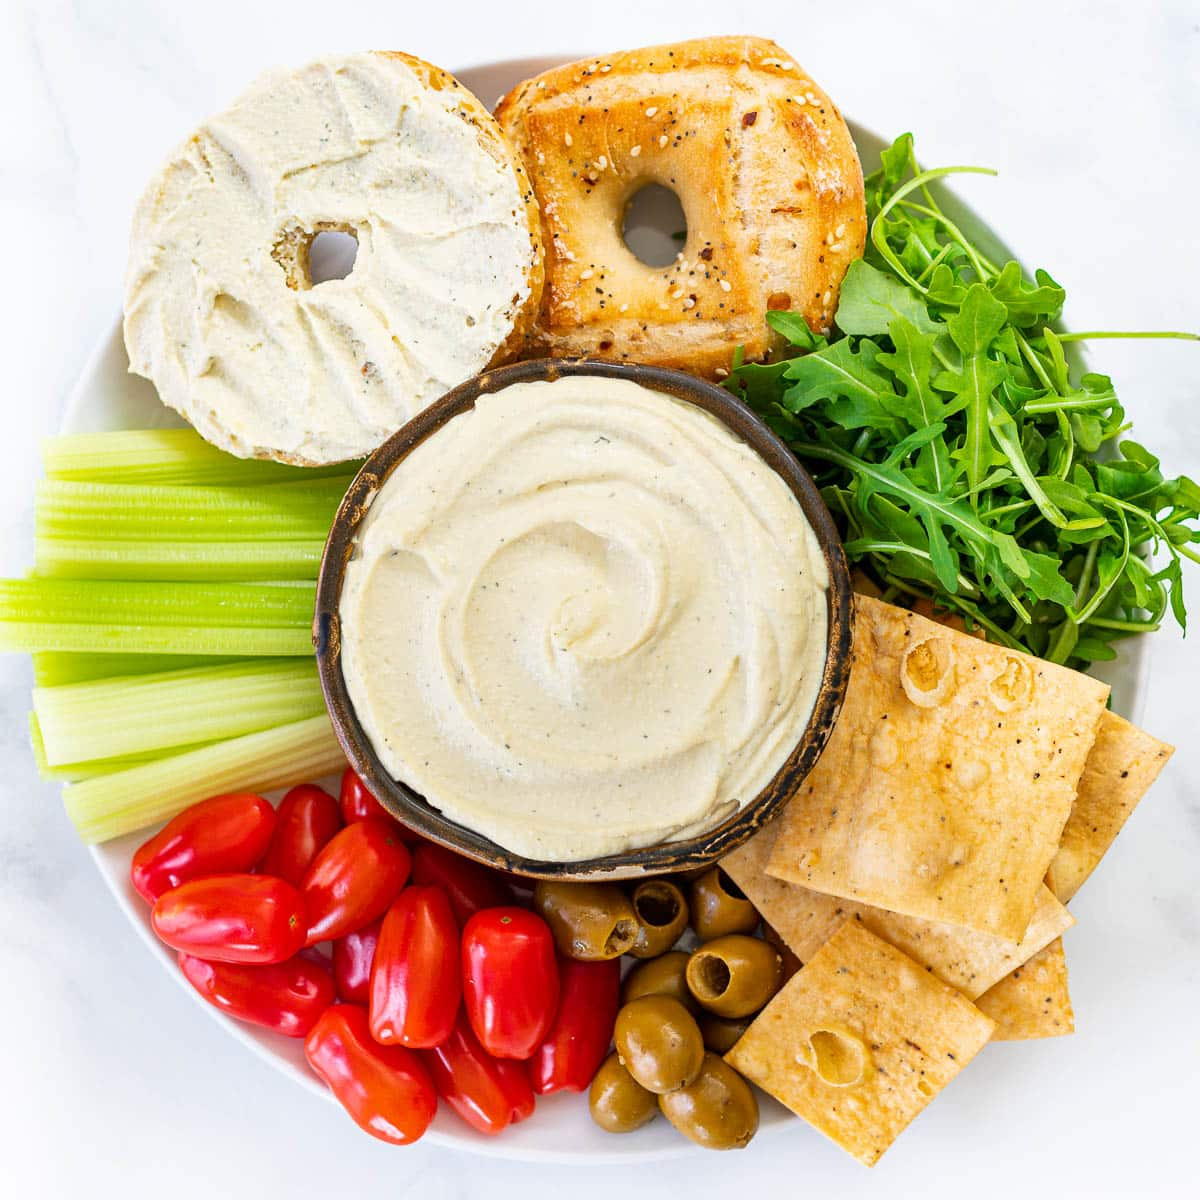 vegan cream cheese on a platter of crackers, bagels, veggies